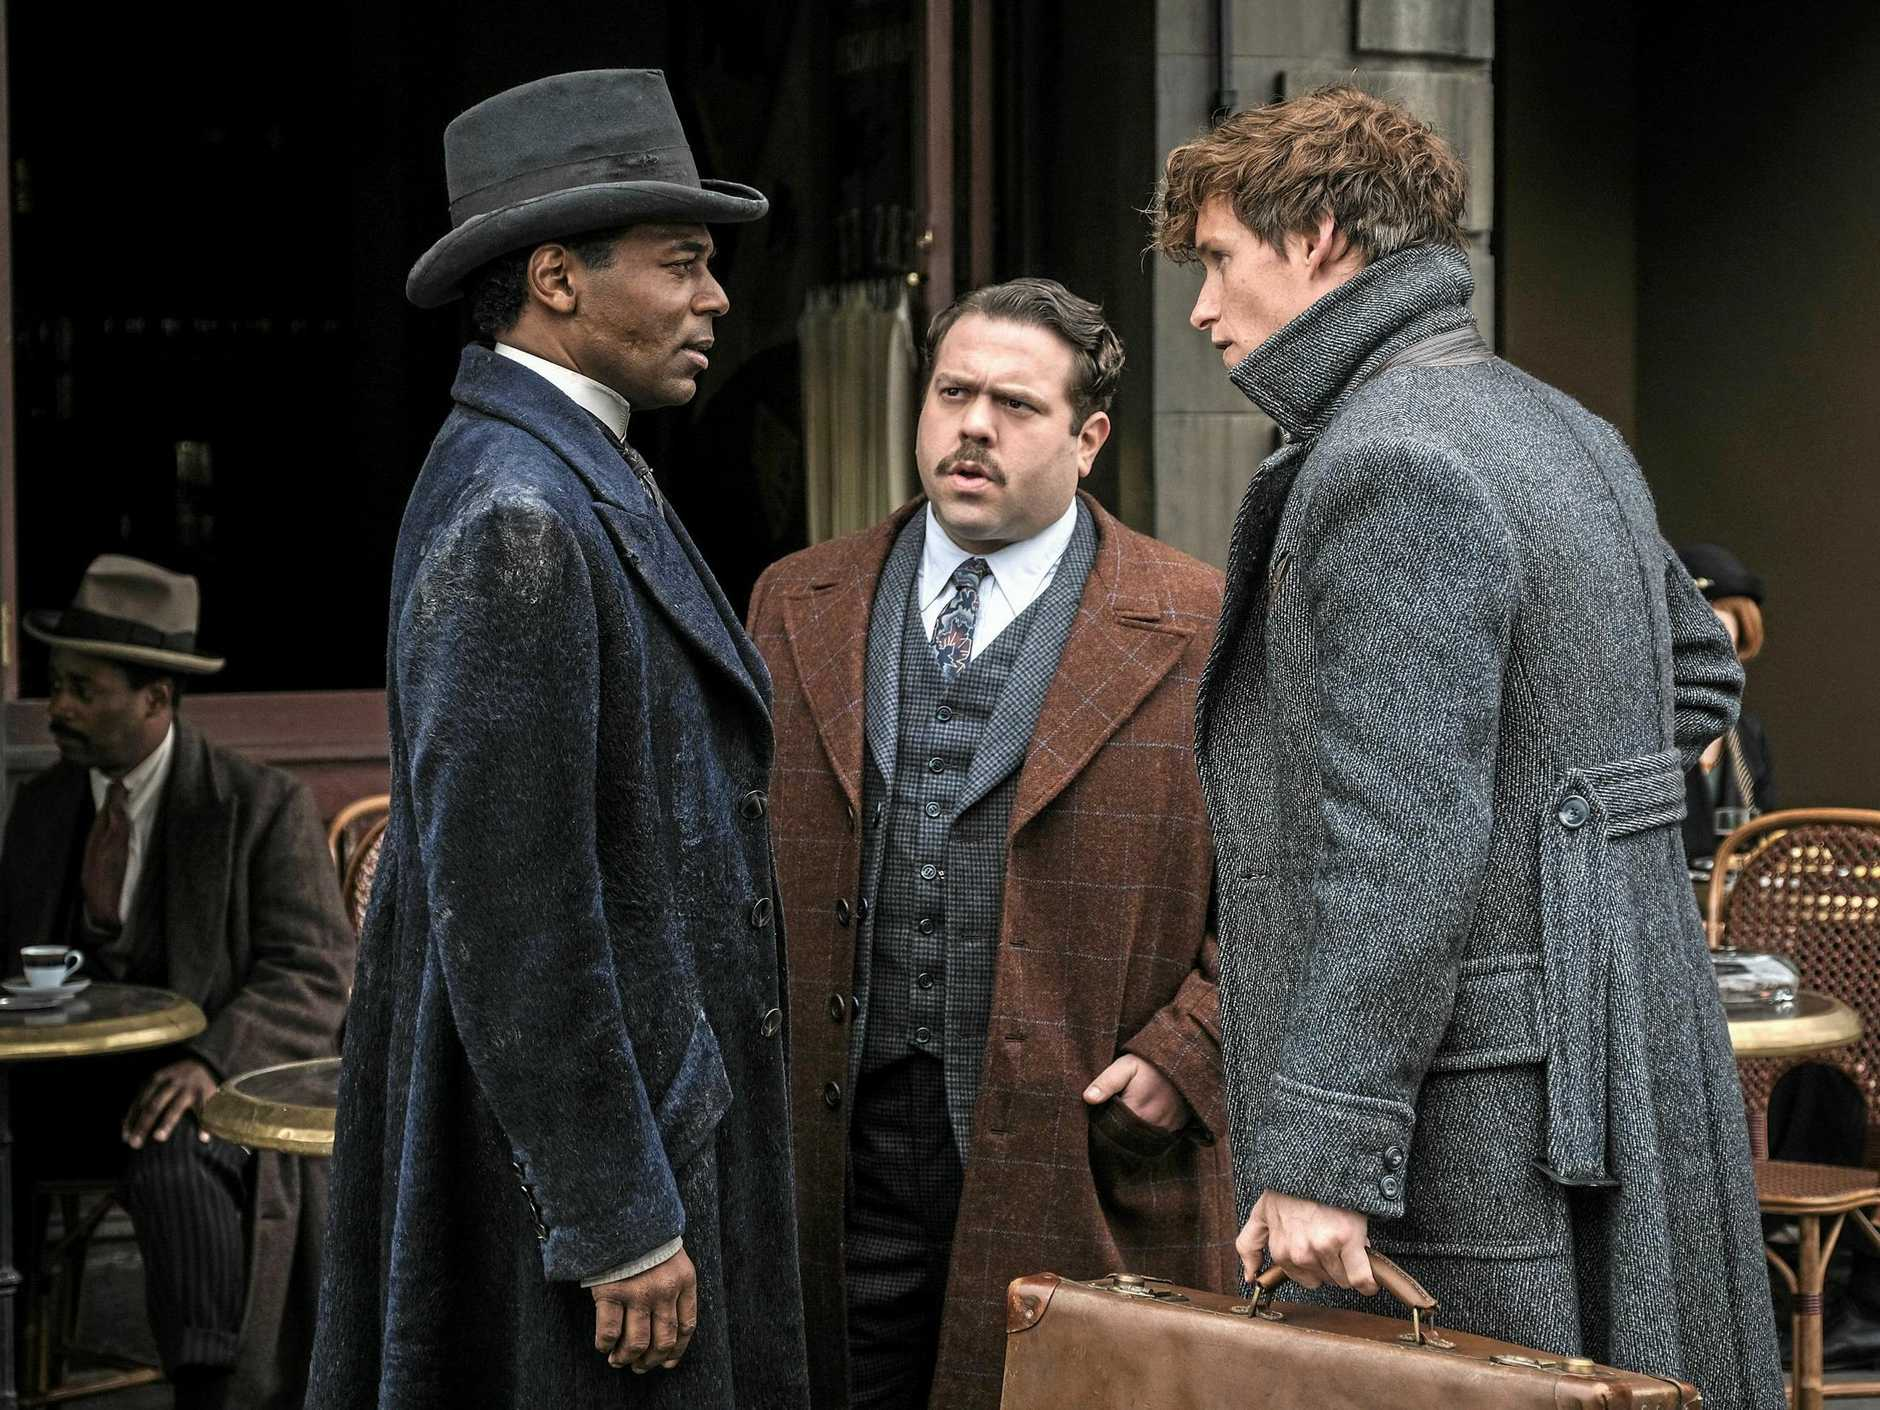 William Nadylam, Dan Fogler and Eddie Redmayne in a scene from the movie Fantastic Beasts: The Crimes of Grindelwald. Supplied by Warner Bros.